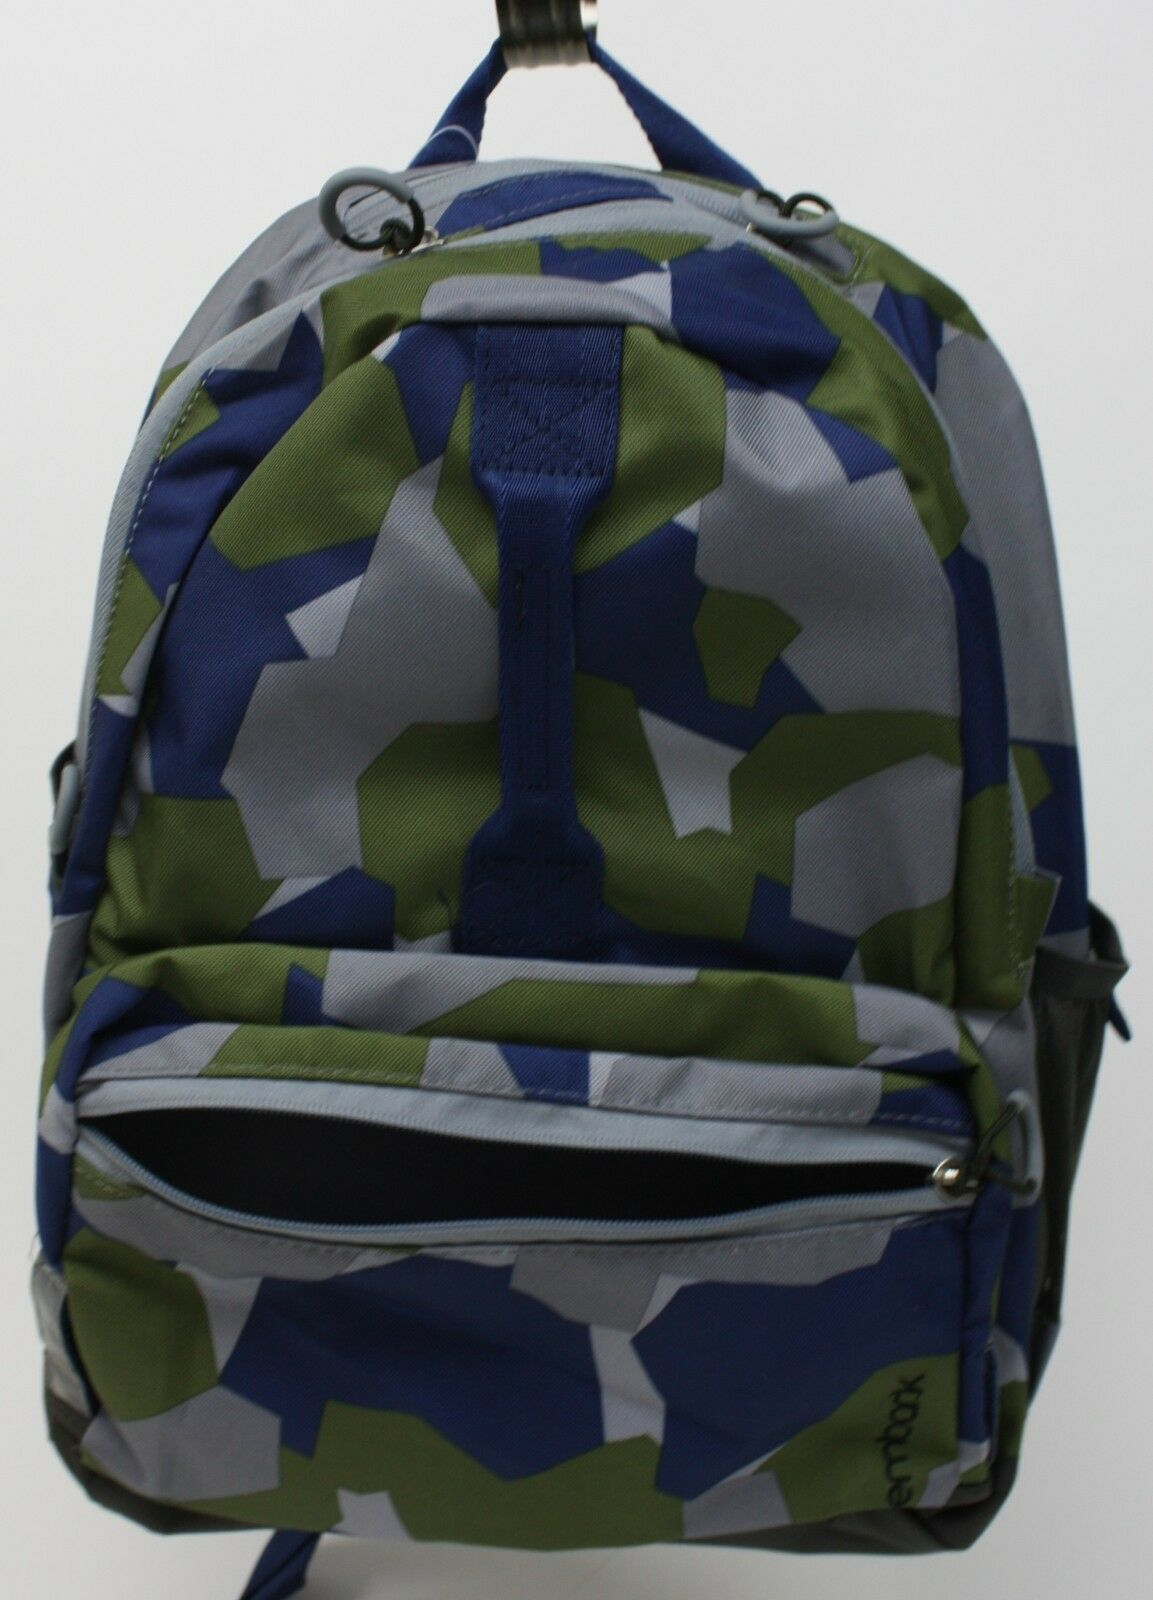 8ae6496dc5ed embark backpack cheap   OFF45% The Largest Catalog Discounts